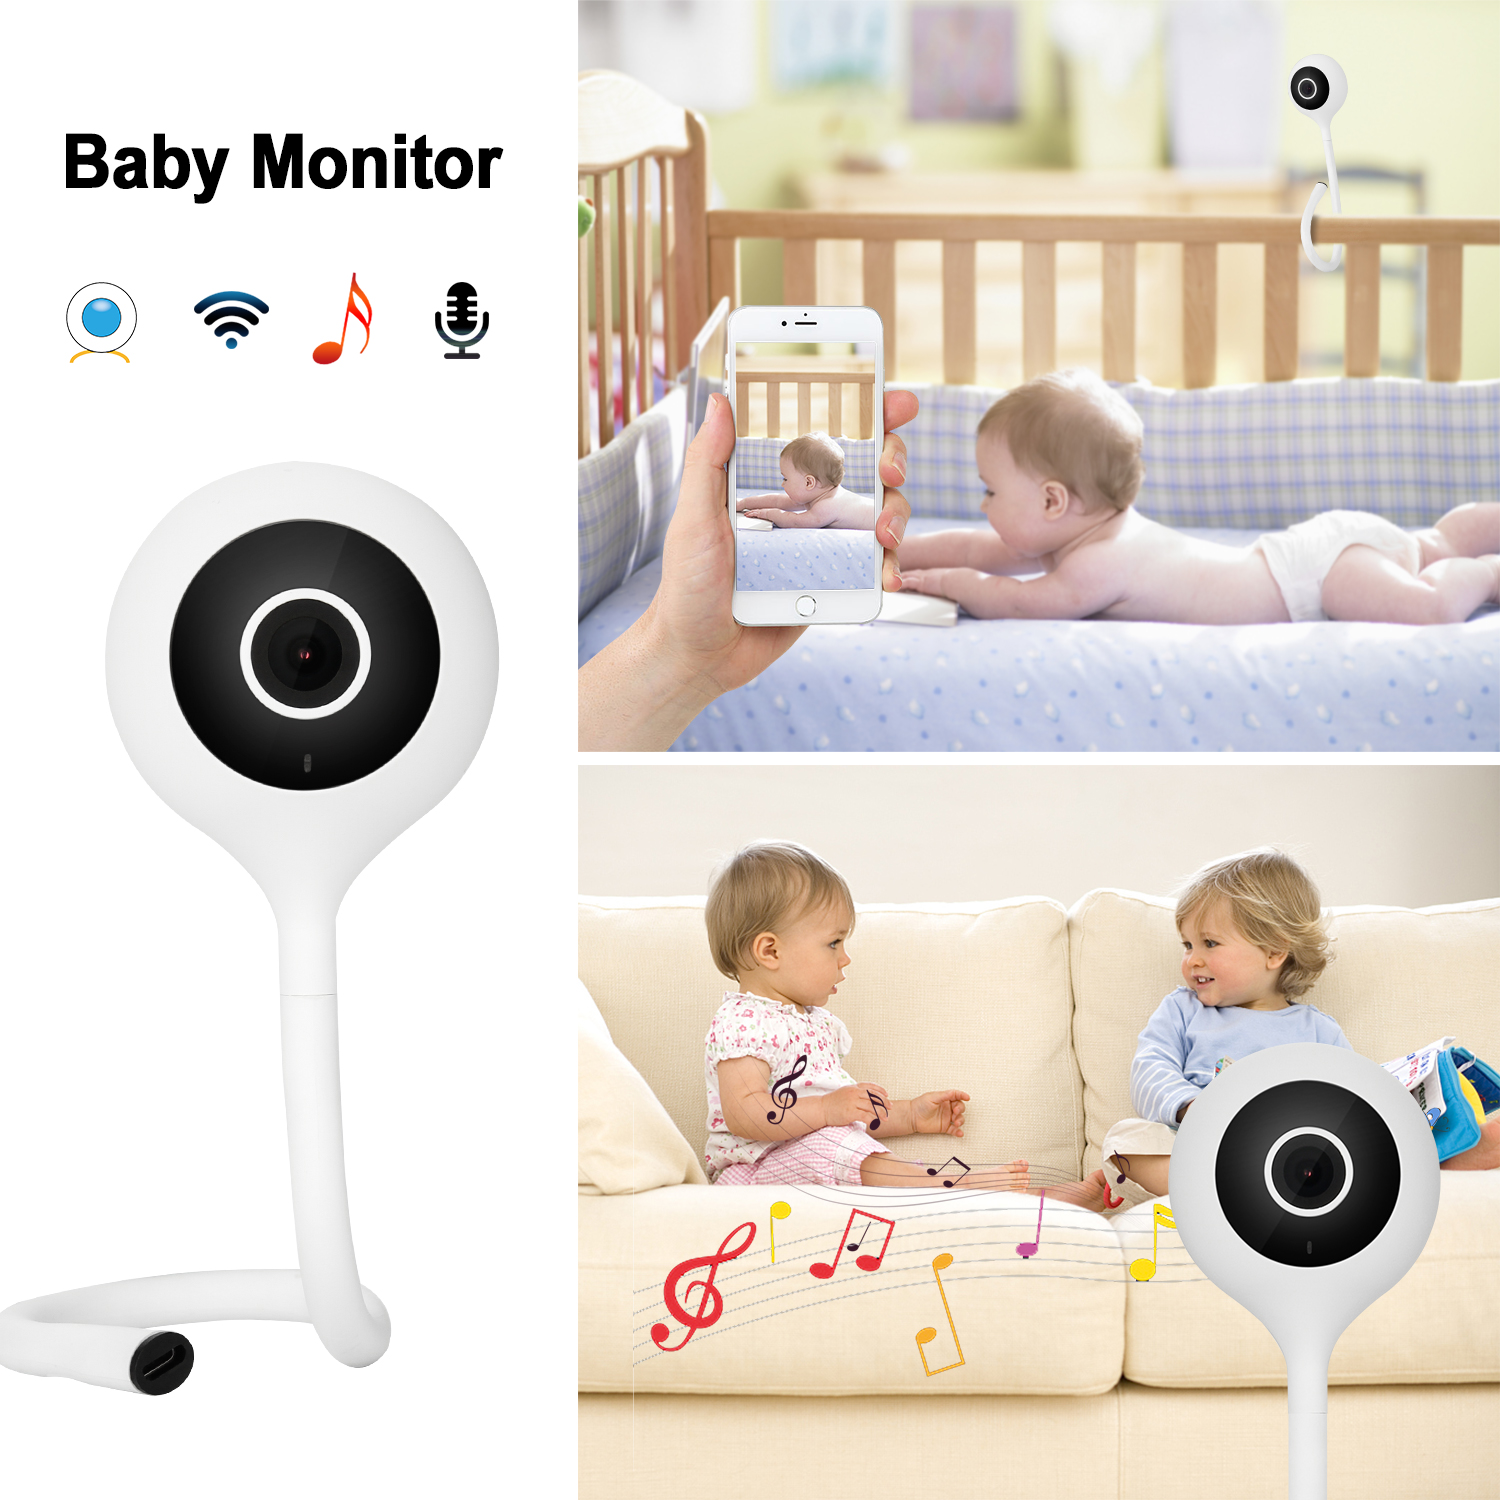 AGPtek Video Baby Monitor with WiFi for Home 2 Way Audio IR Night Vision  Music Player